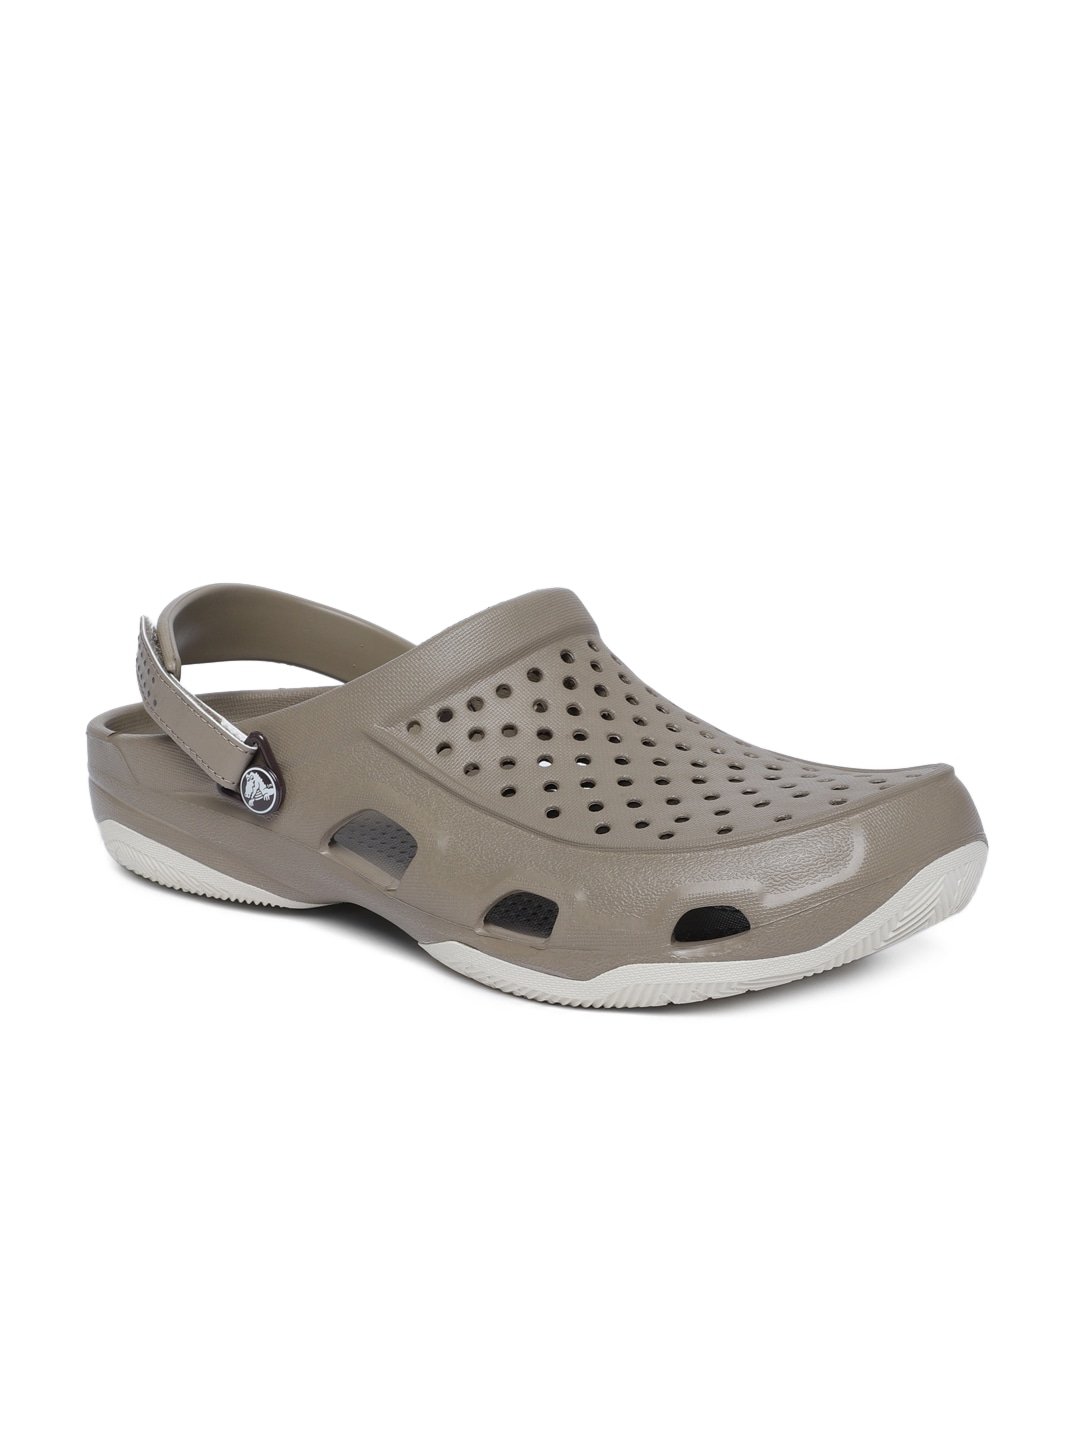 c1a2c1b12 Crocs Shoes Online - Buy Crocs Flip Flops   Sandals Online in India - Myntra